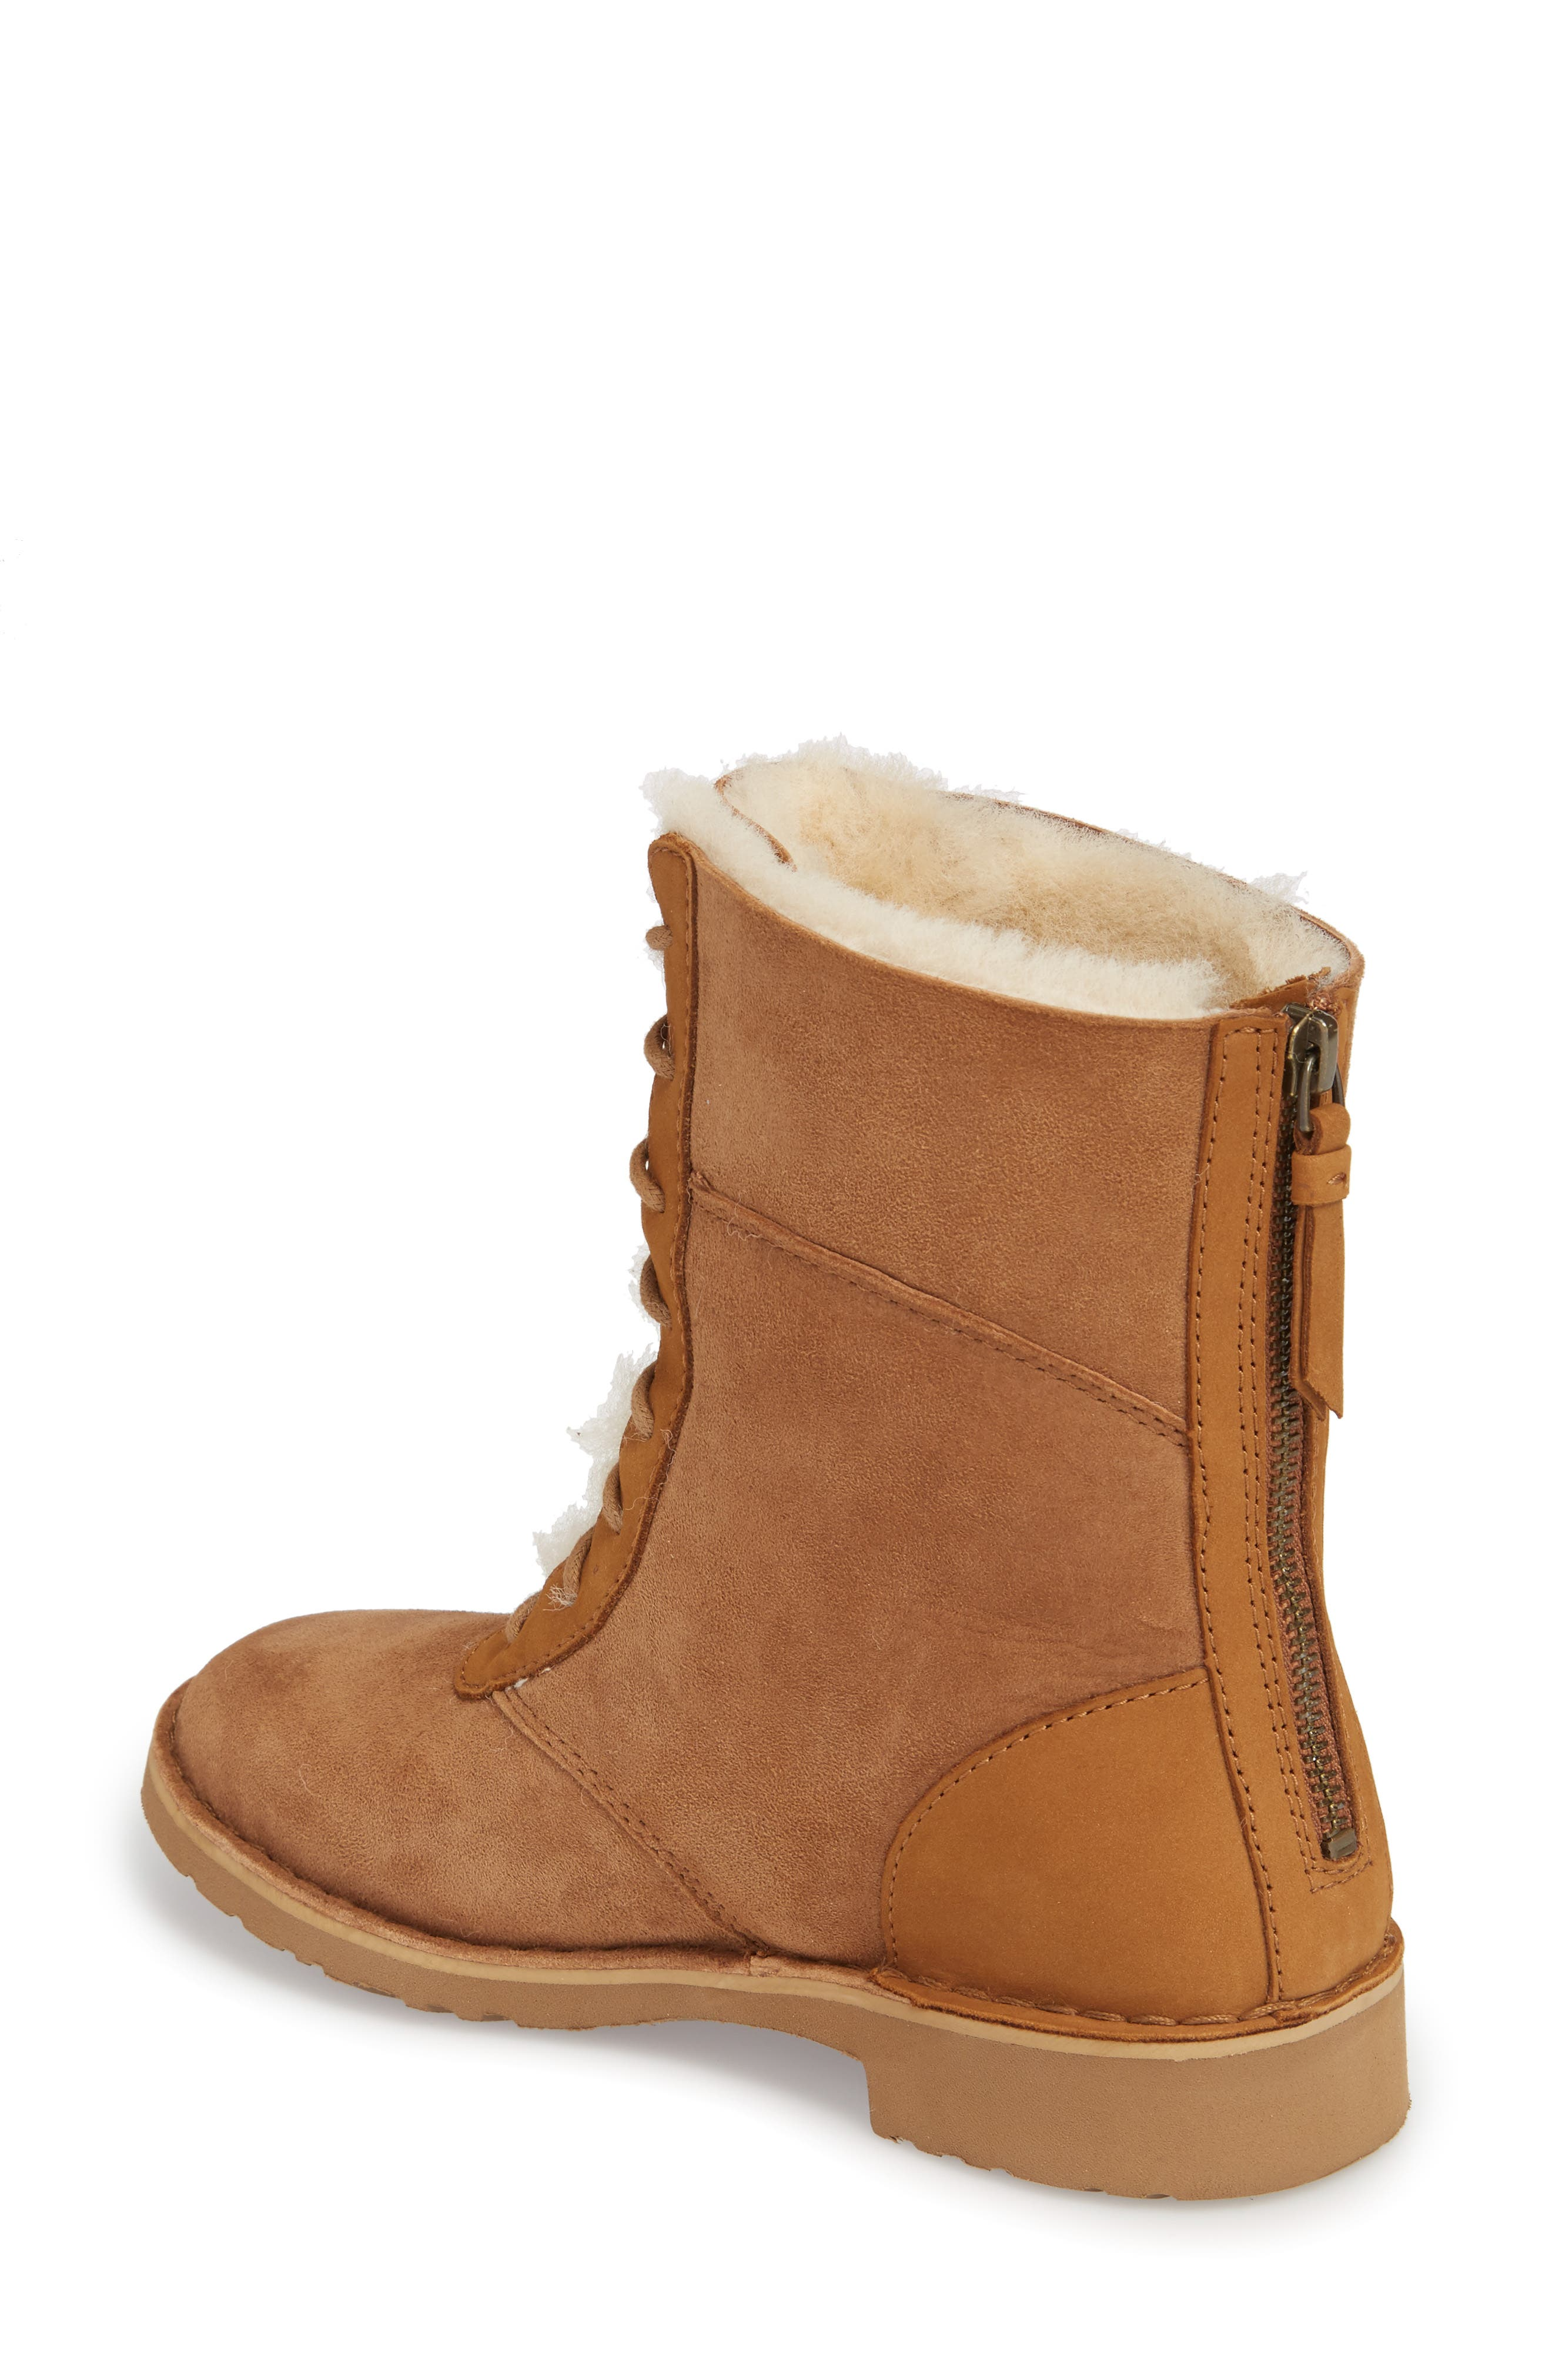 Daney Lace-Up Boot,                             Alternate thumbnail 2, color,                             Chestnut Suede